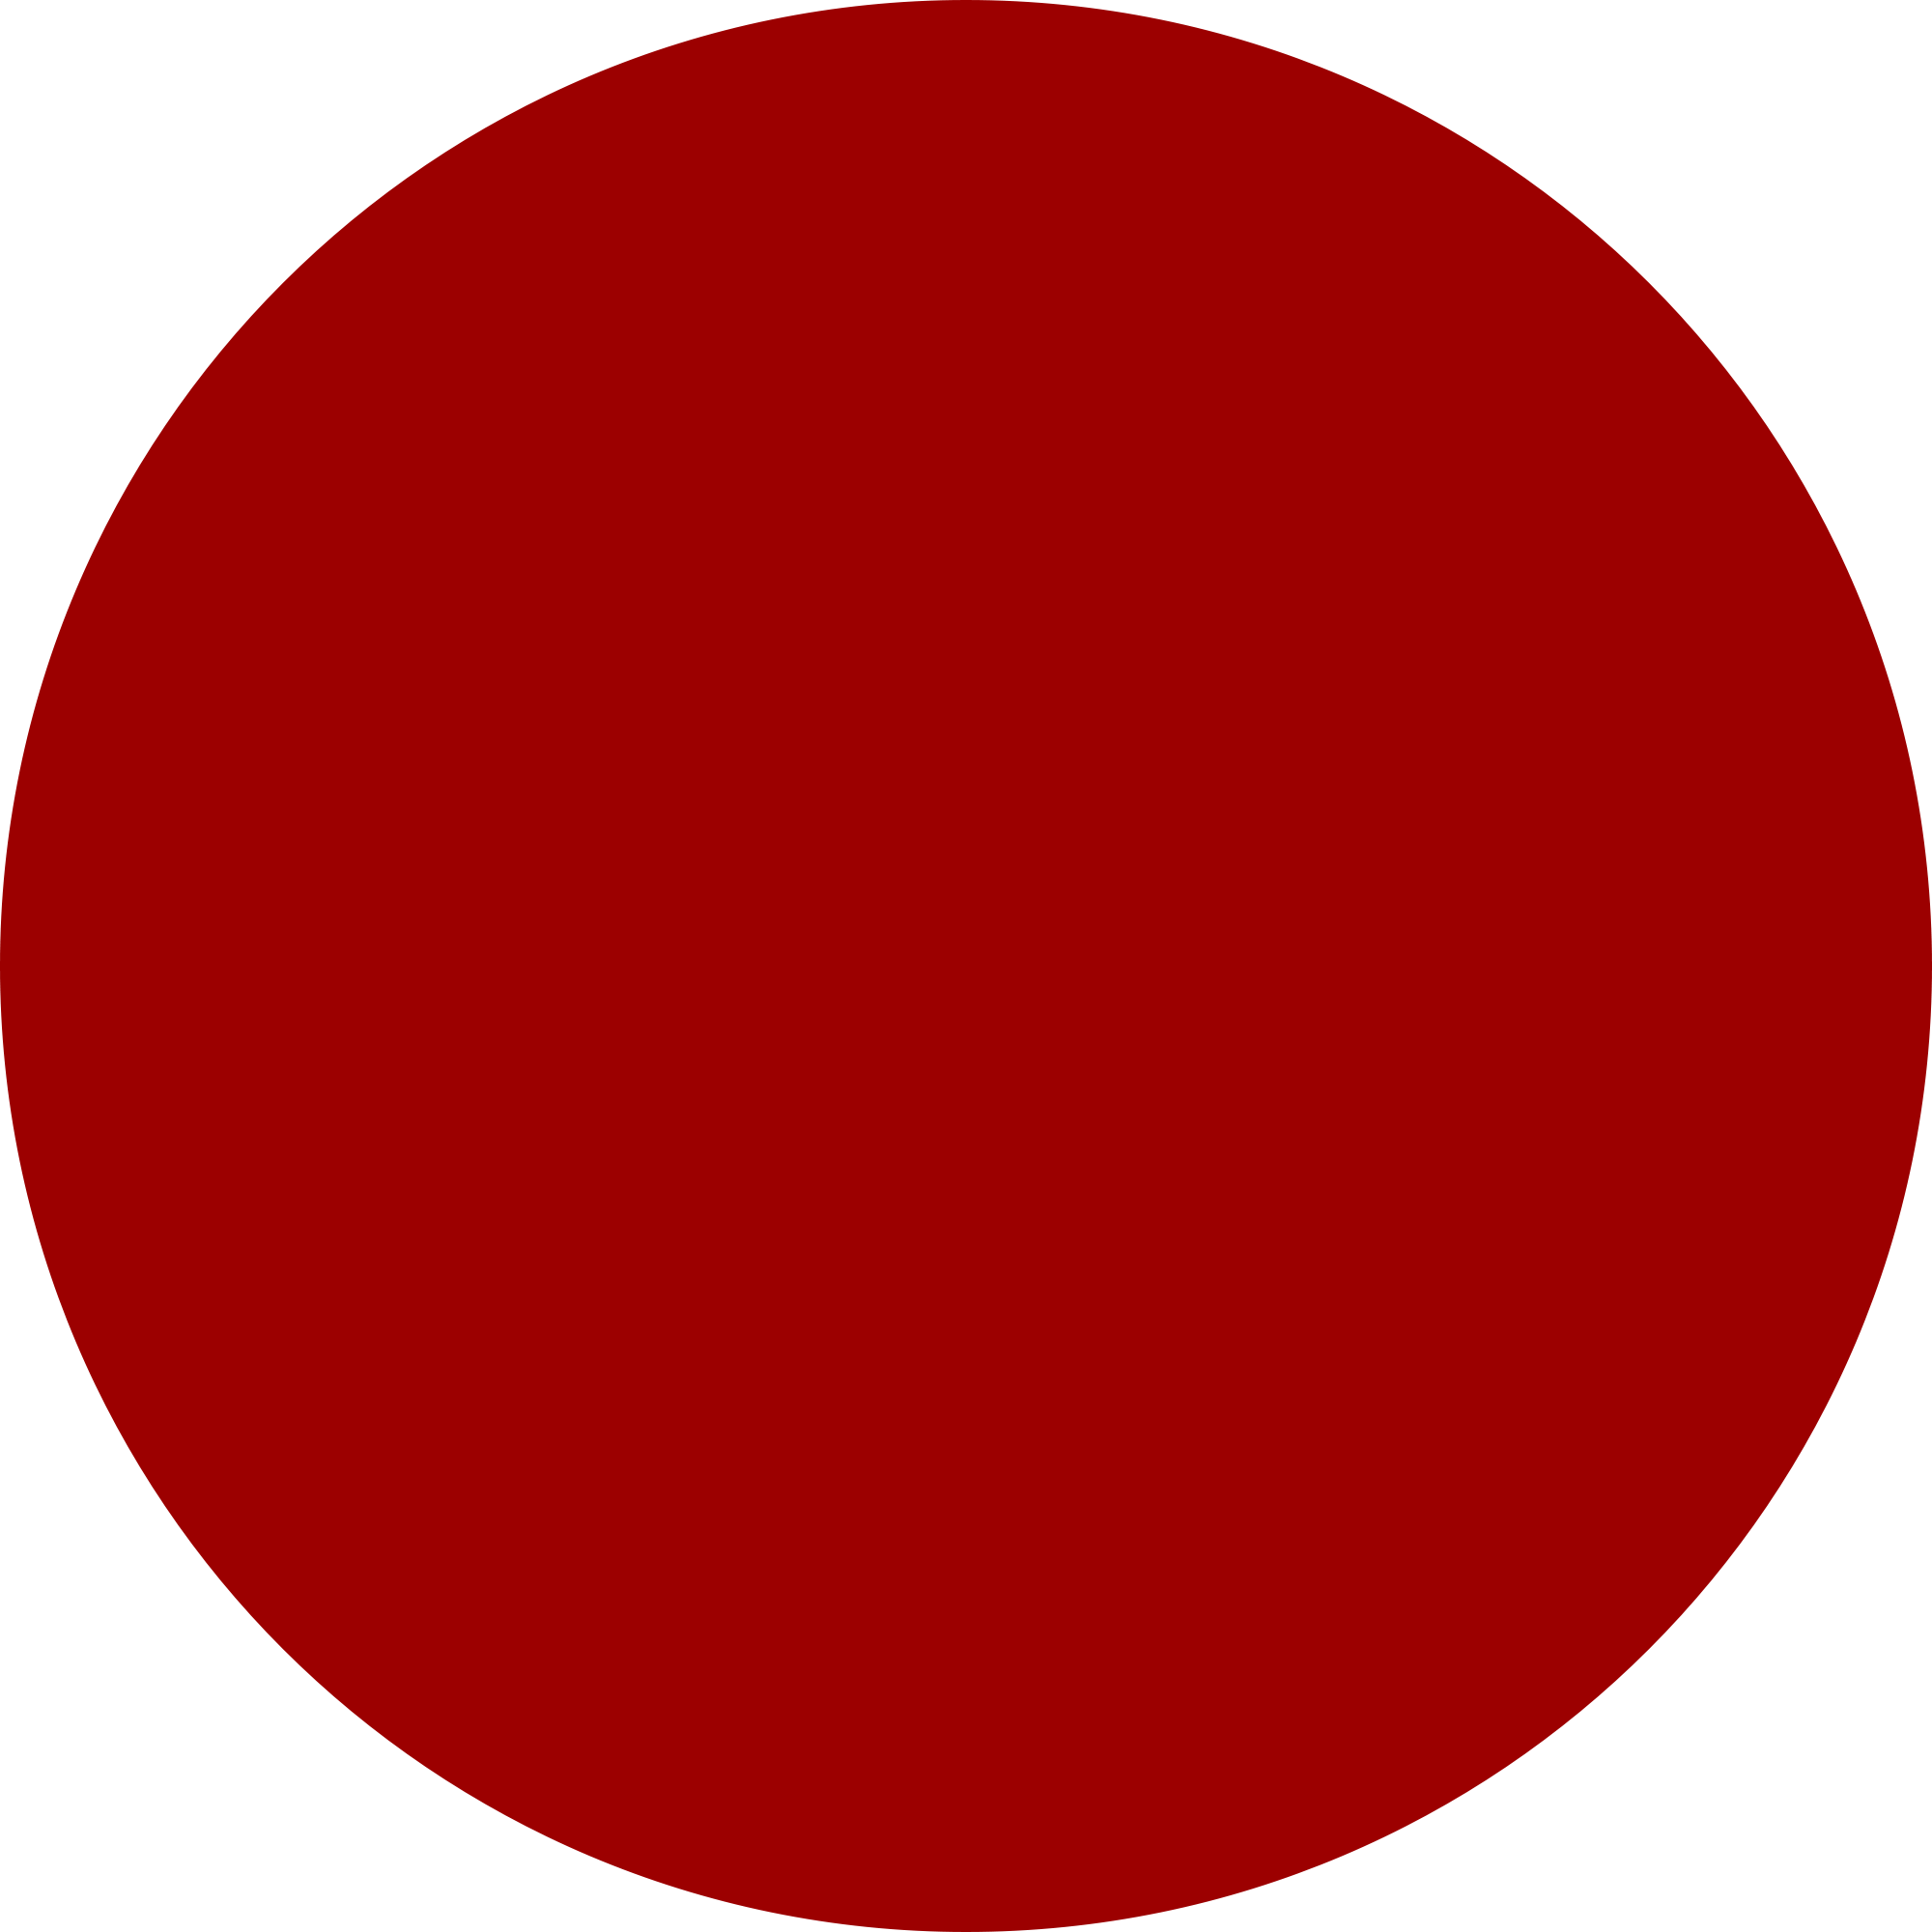 Dots clipart red circle File:Locator Dot Commons Wikimedia Open